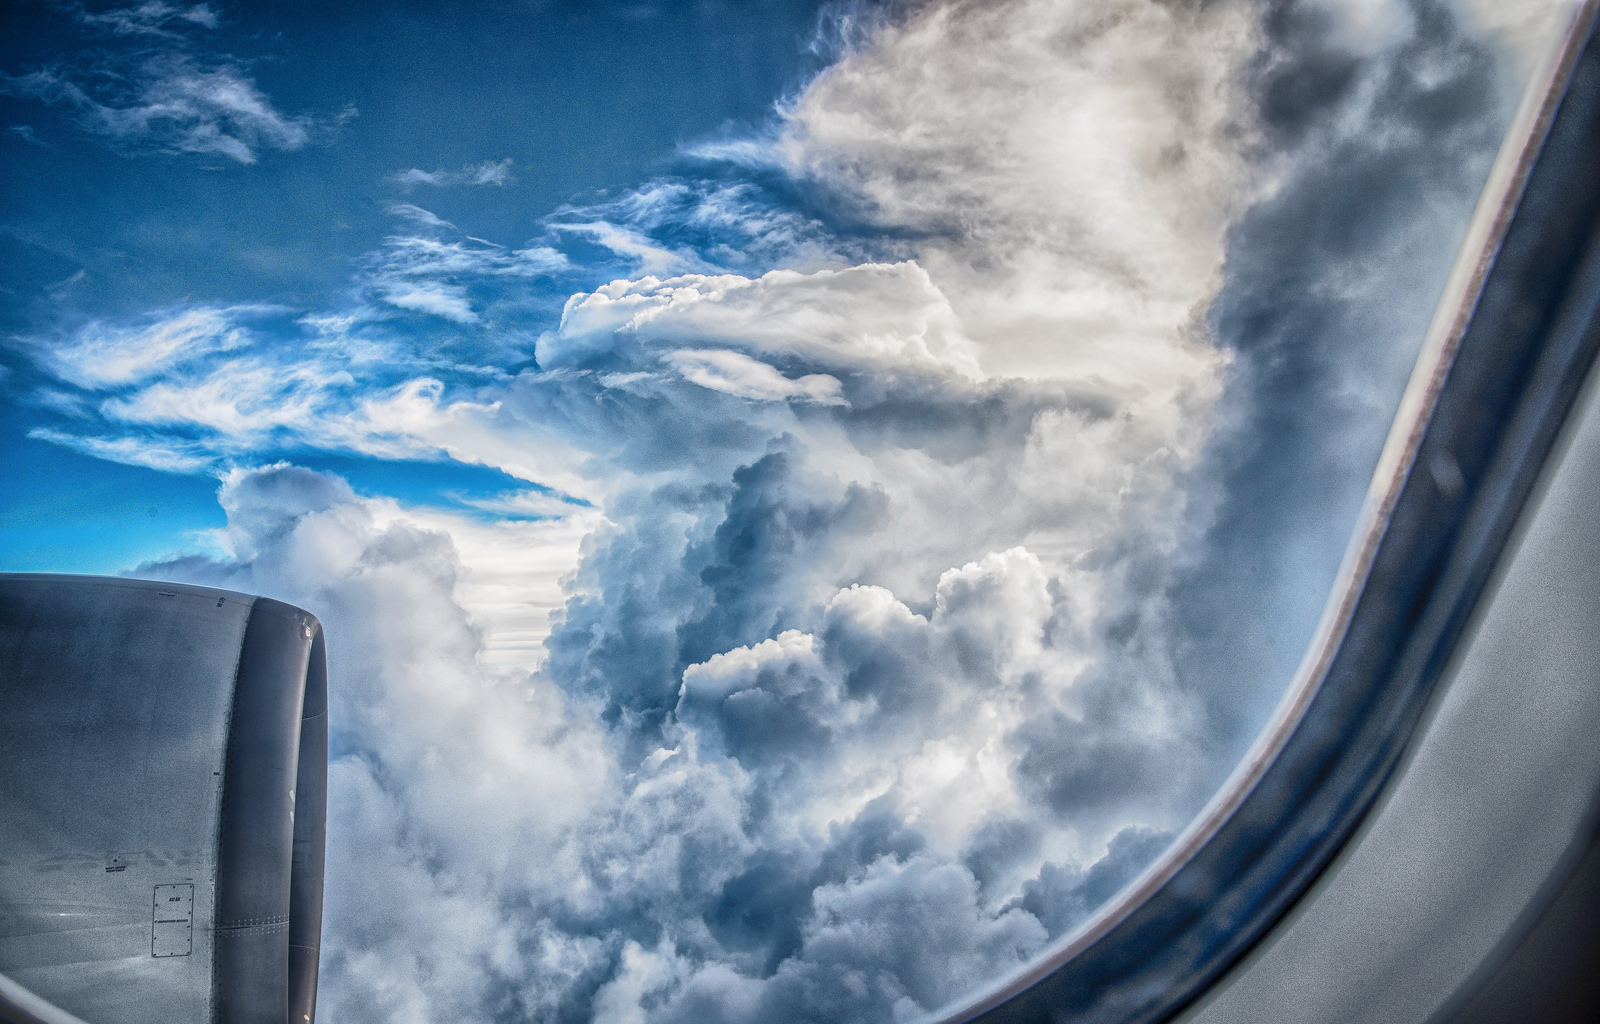 Beyond The Ceiling Of Clouds